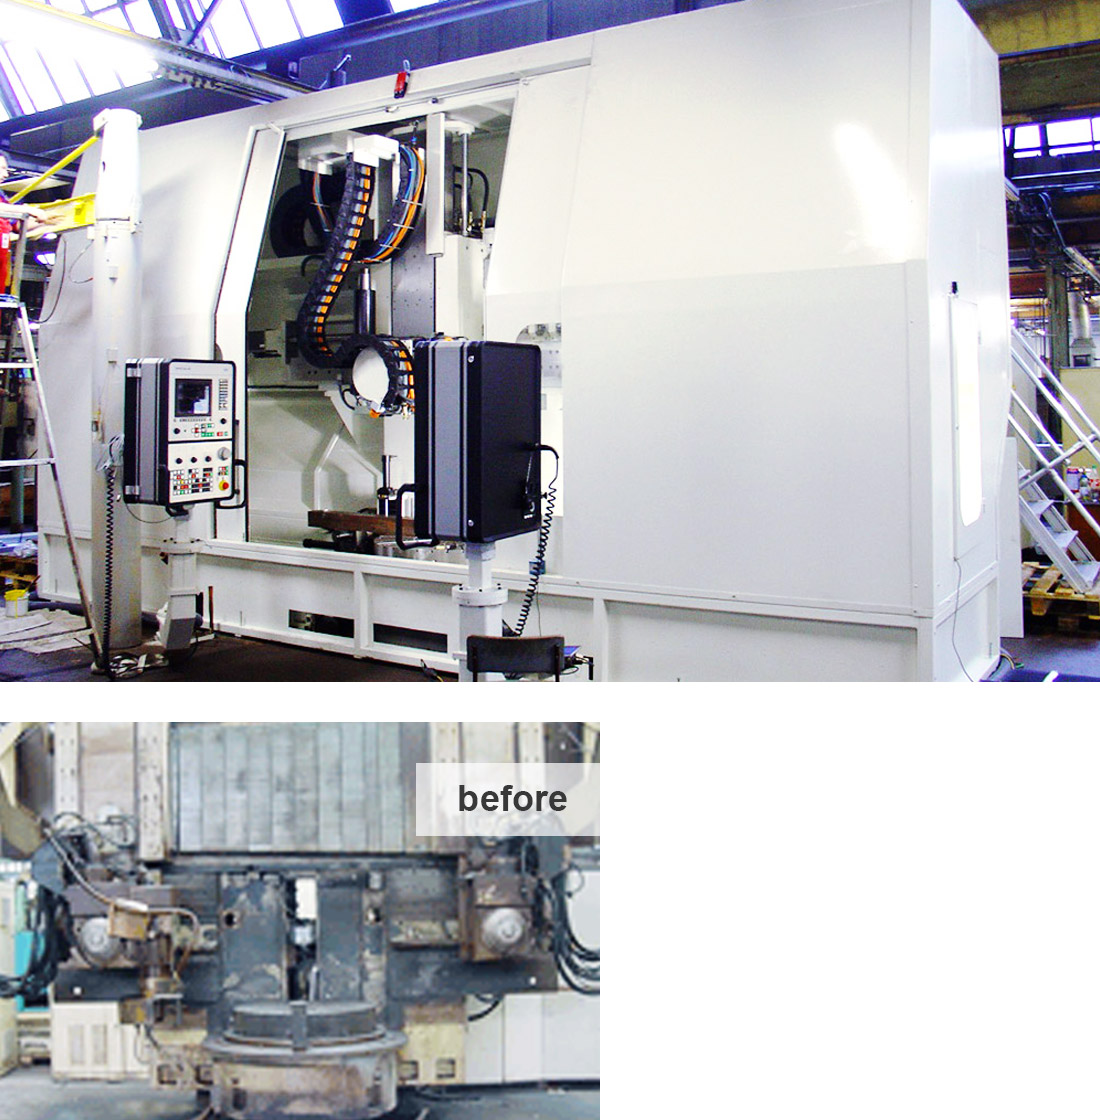 EDM Technik, Modernization Vertical Grinding Machine